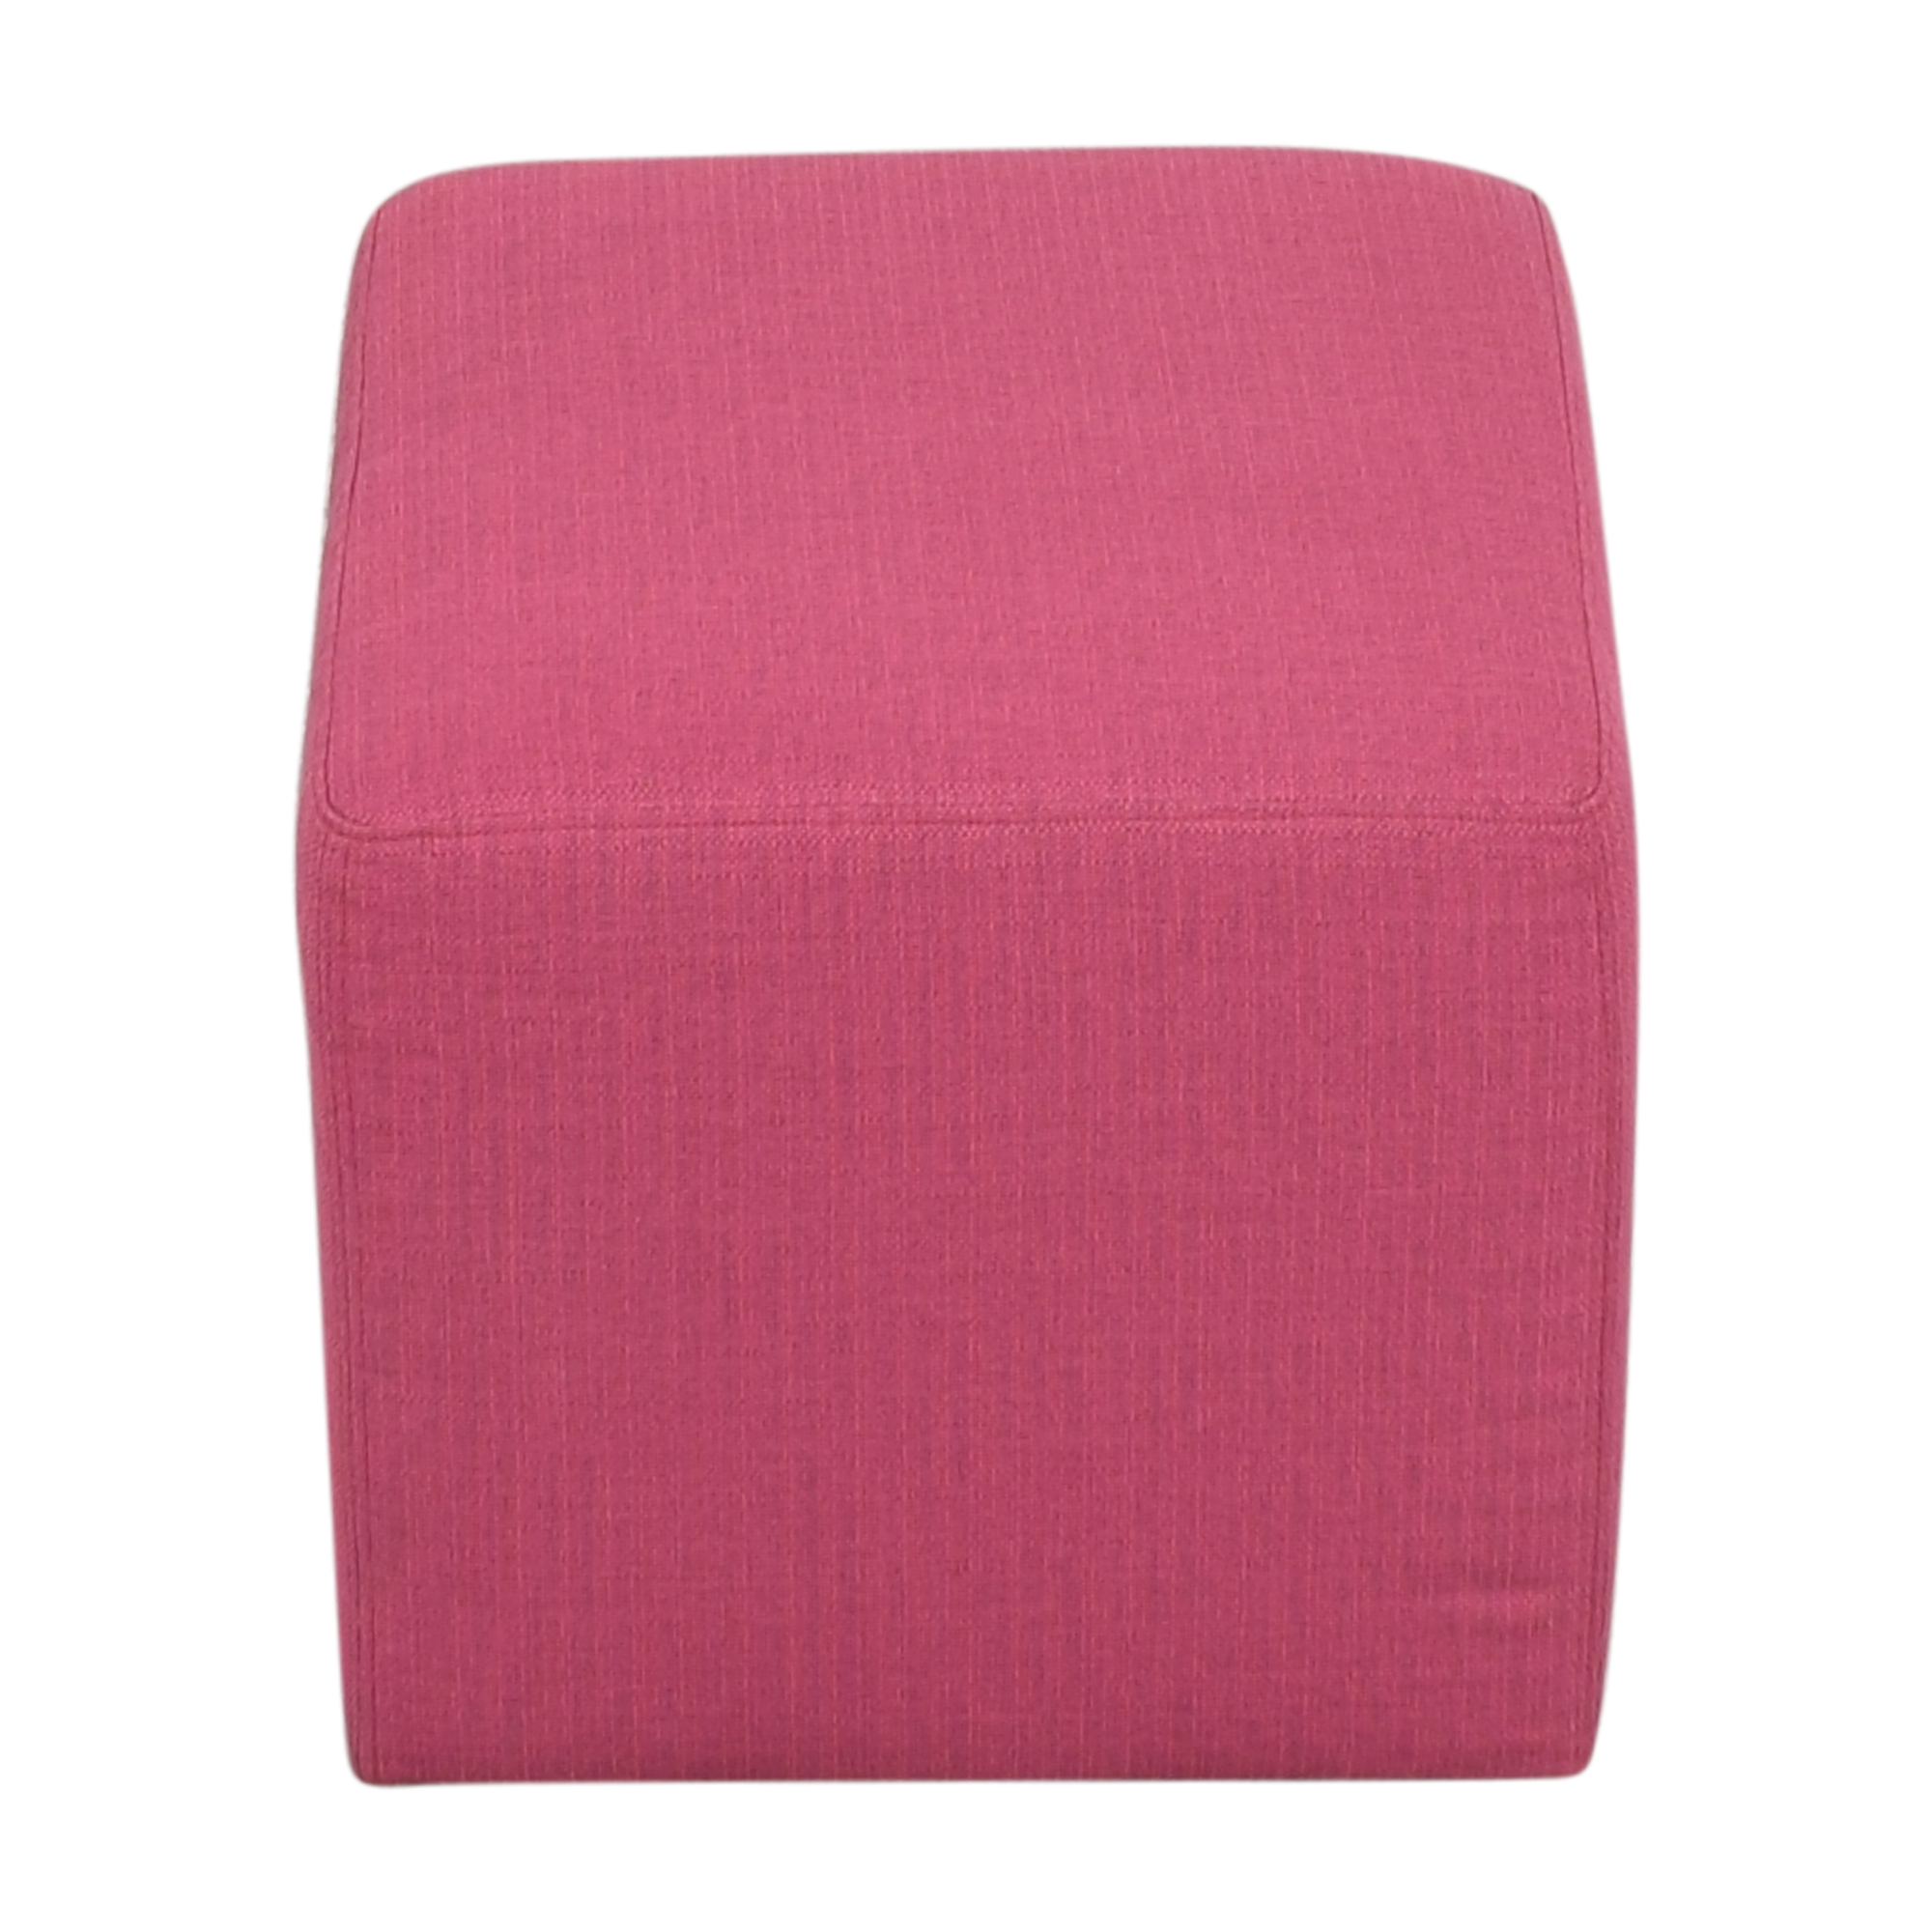 ABC Carpet & Home Square Upholstered Ottoman pink